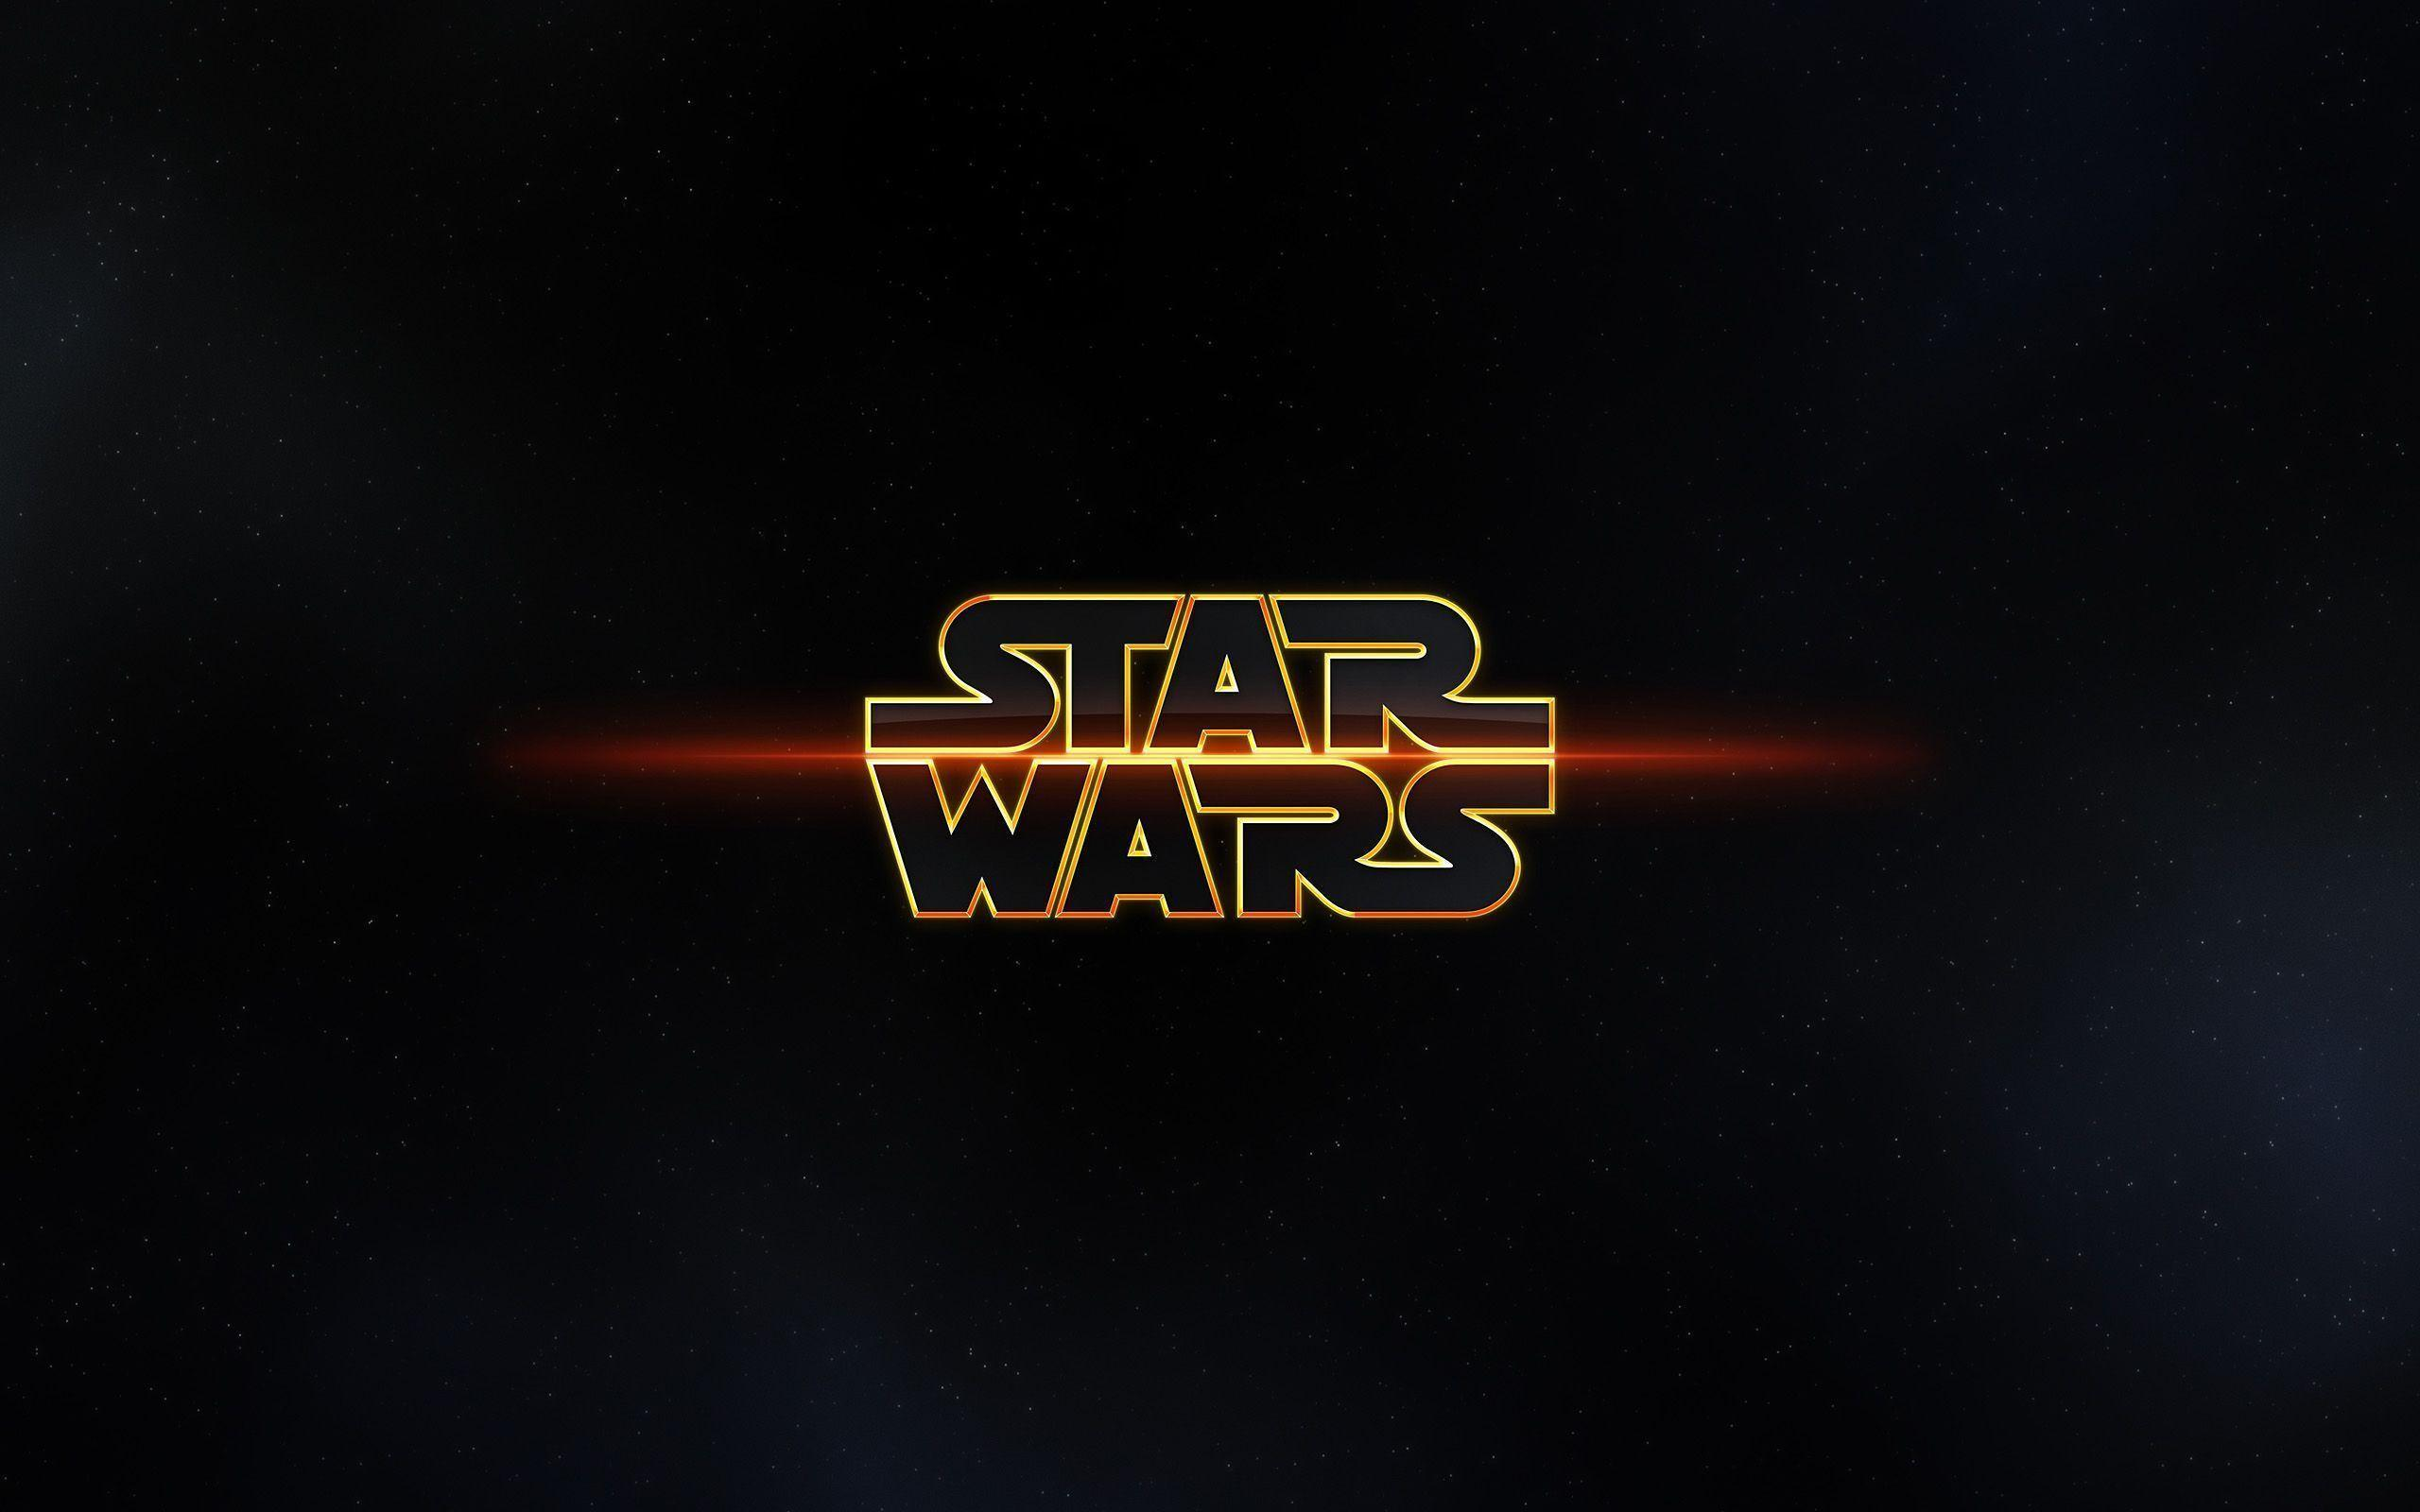 Epic Star Wars Wallpapers 2560x1600